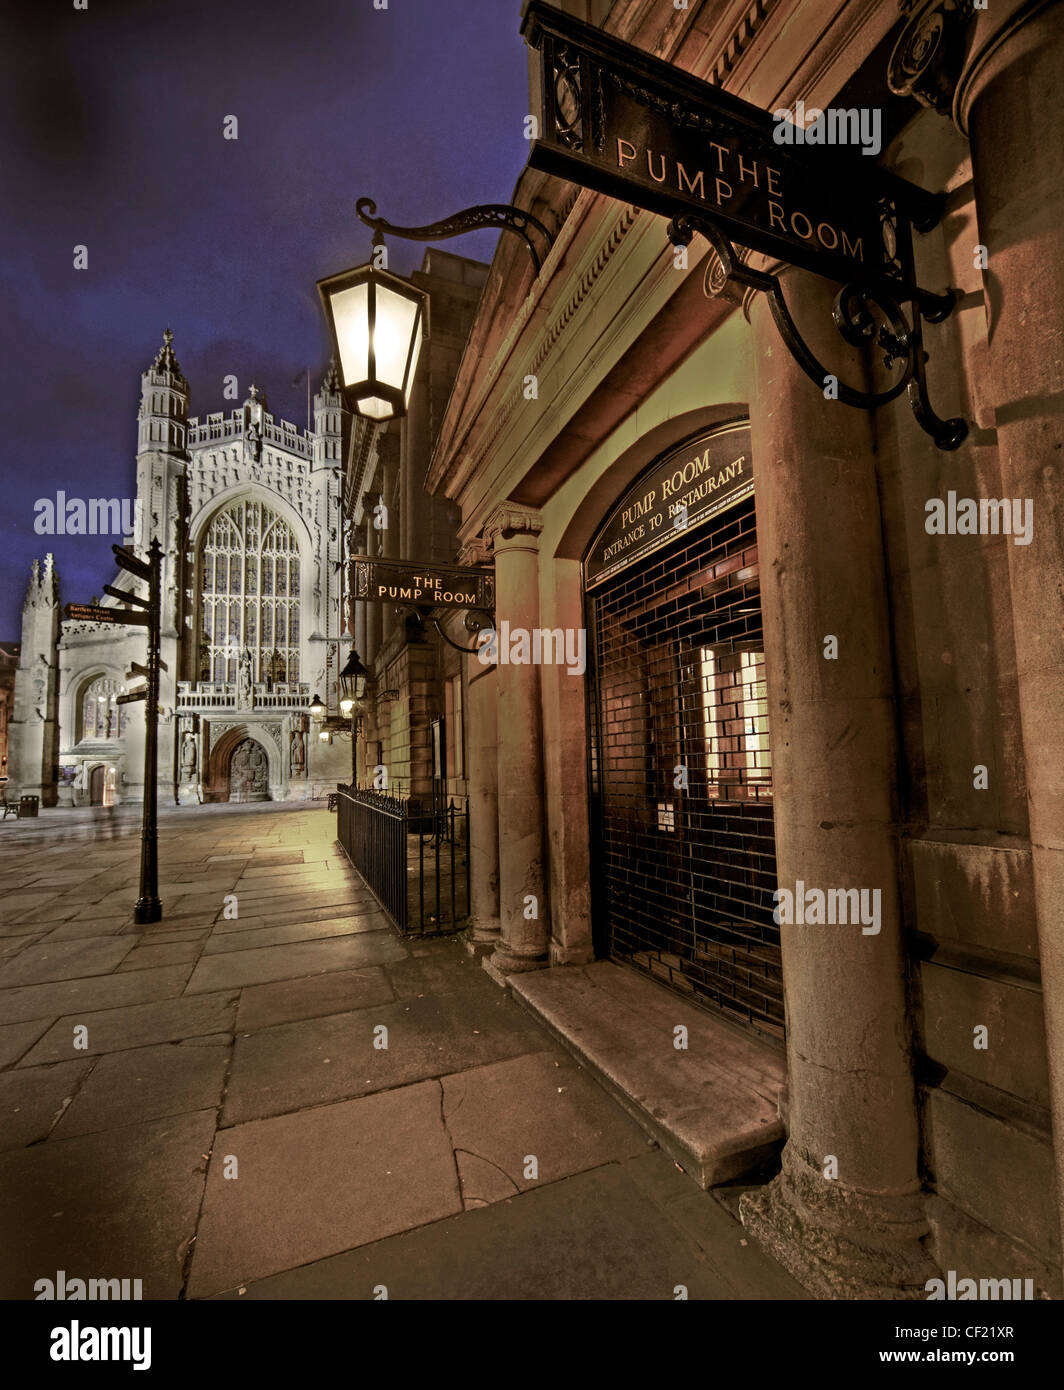 City of Bath,Pump,Room,and,Abbey,at,Dusk,gotonysmith,hotpixuk,night,dusk,shot,history,avon,historic,streets,street,gotonysmith,Buy Pictures of,Buy Images Of,Bath,Pump,Room,and,Abbey,at,Dusk,Avon,Bristol,City,of,Bath,Pump,Room,and,Abbey,at,Dusk,The,Roman,Baths,complex,is,a,site,of,historical,interest,in,the,English,city,of,Bath.,The,house,is,a,well-preserved,Roman,site,for,public,bathing.,The,Roman,Baths,themselves,are,below,the,modern,street,level.,There,are,four,main,features,the Sacred Spring,the Roman Temple,the,Roman,Bath,House,and,the,Museum,holding,finds,from,Roman,Bath.,The,buildings,above,street,level,date,from,the,19th,century.,The,Baths,are,a,major,tourist,attraction,and,together with the Grand Pump Room,receive more than one million visitors a year,with 1,037,518,people,during,2009.,It,was,featured,on,the,2005,TV,program,Seven,Natural,Wonders,as,one,of,the,wonders,of,the,West,Country.,Visitors,can,see,the,Baths,and,Museum,but,cannot,enter,the,water.,An,audio,guide,is,available